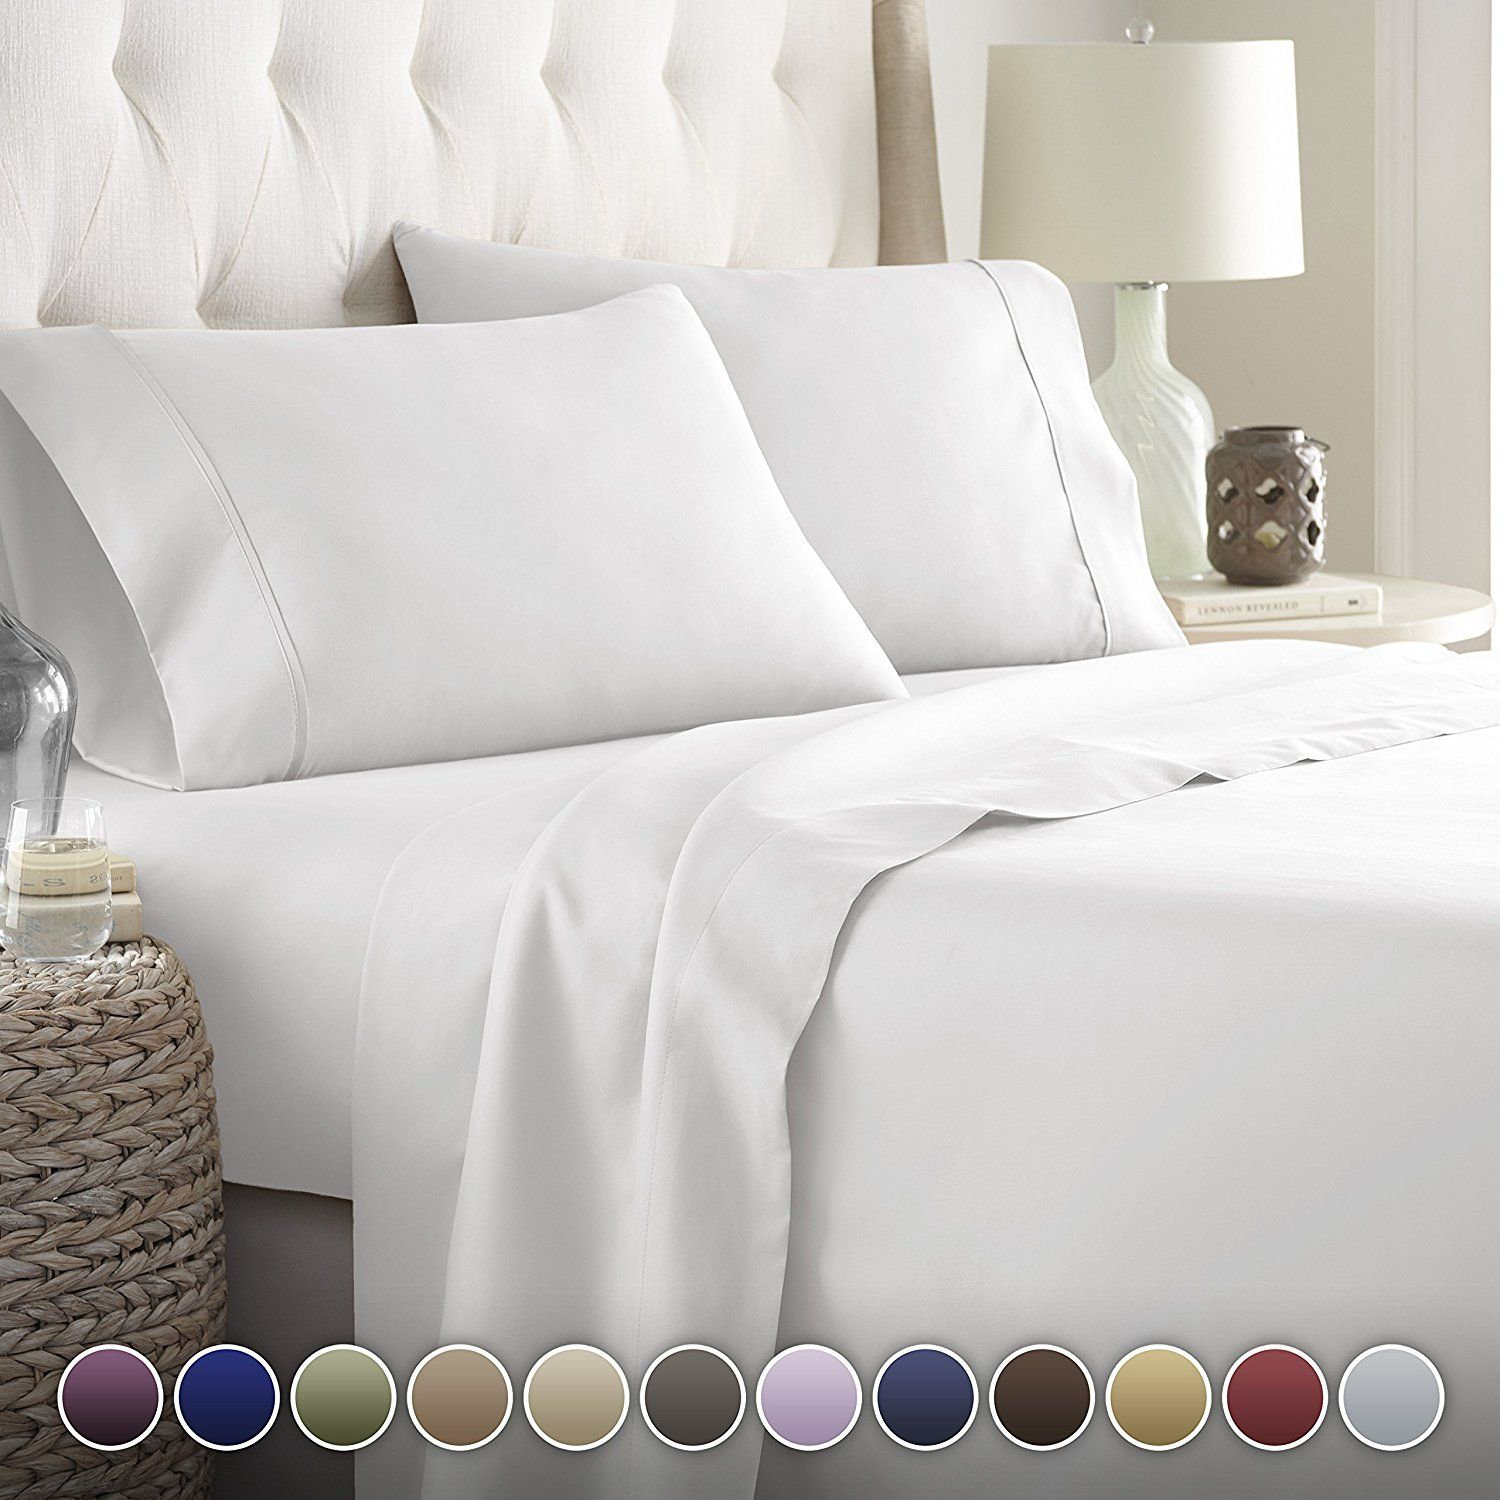 Hotel Luxury Bed Sheets SetTop Quality Softest Bedding